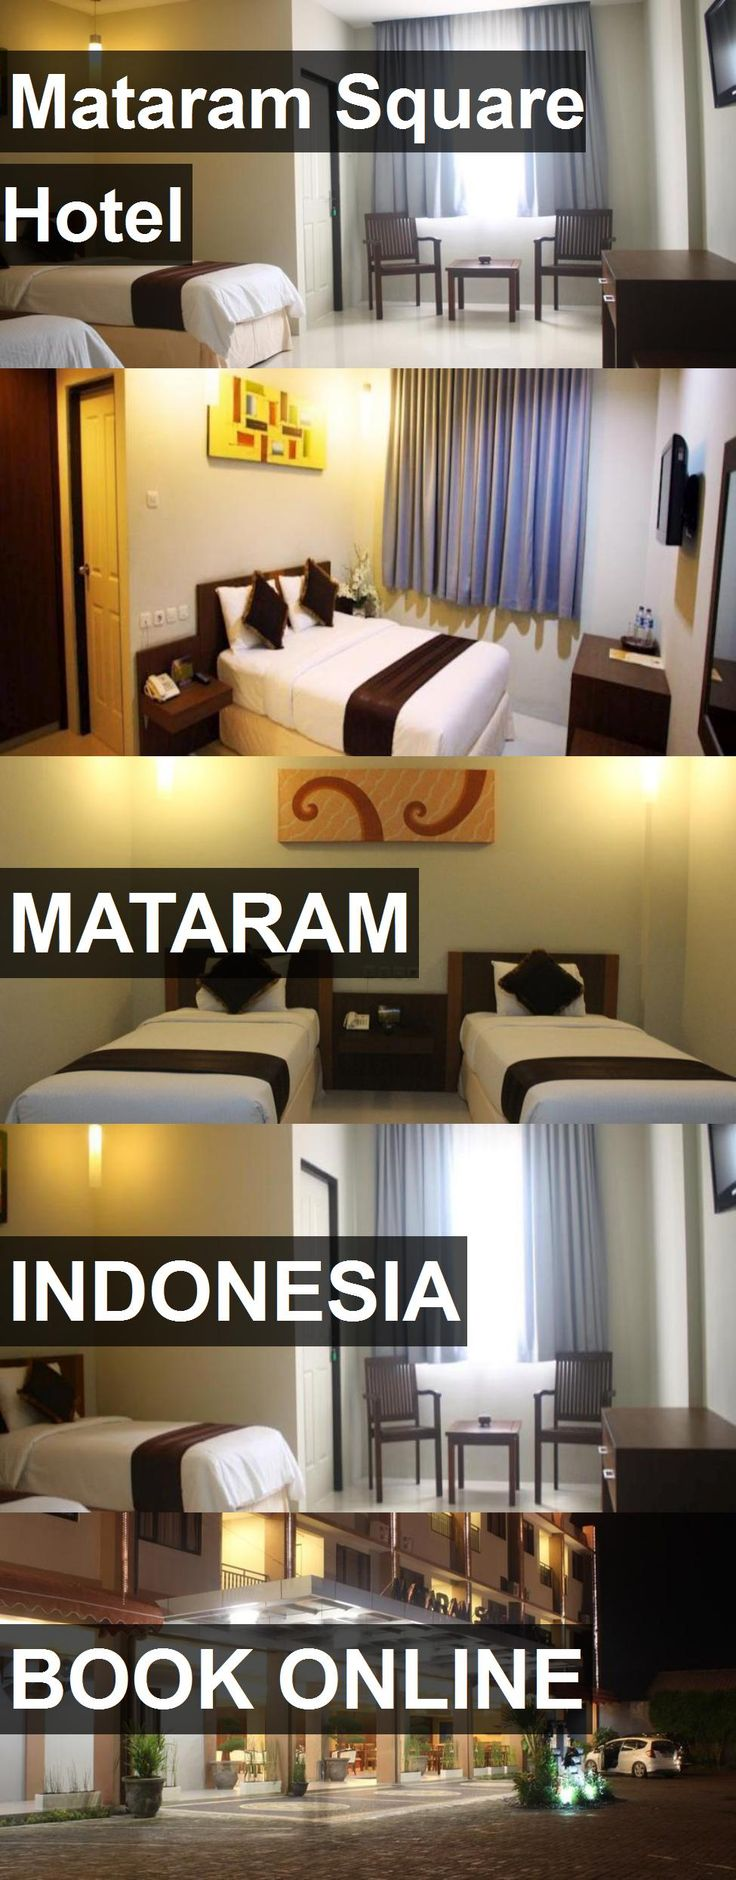 Mataram Square Hotel in Mataram, Indonesia. For more information, photos, reviews and best prices please follow the link. #Indonesia #Mataram #travel #vacation #hotel